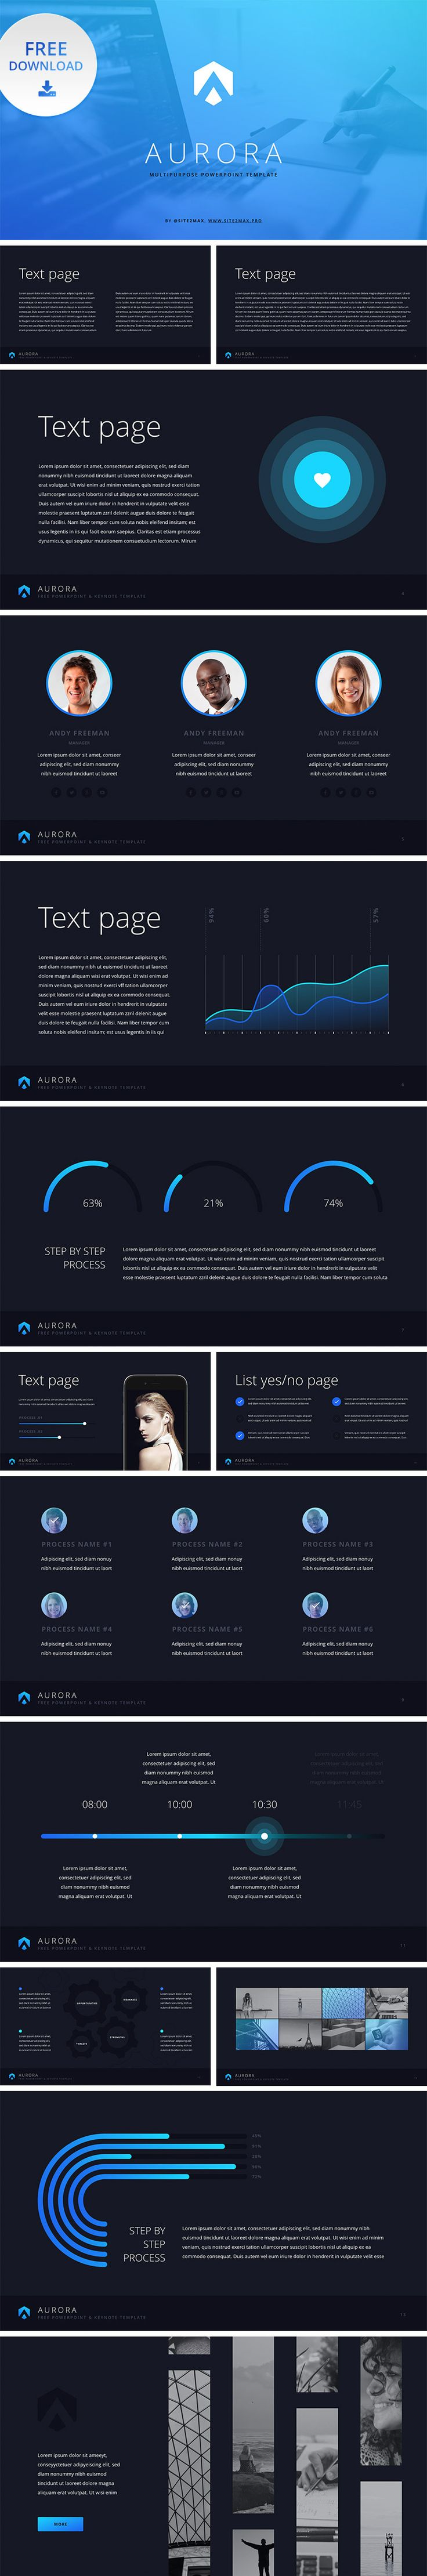 Free PowerPoint Template Download: https://hislide.io/product/aurora-free-ppt-template-blue/ #free #ppt #pptx #design #download #blue #infographic #marketing #powerpoint